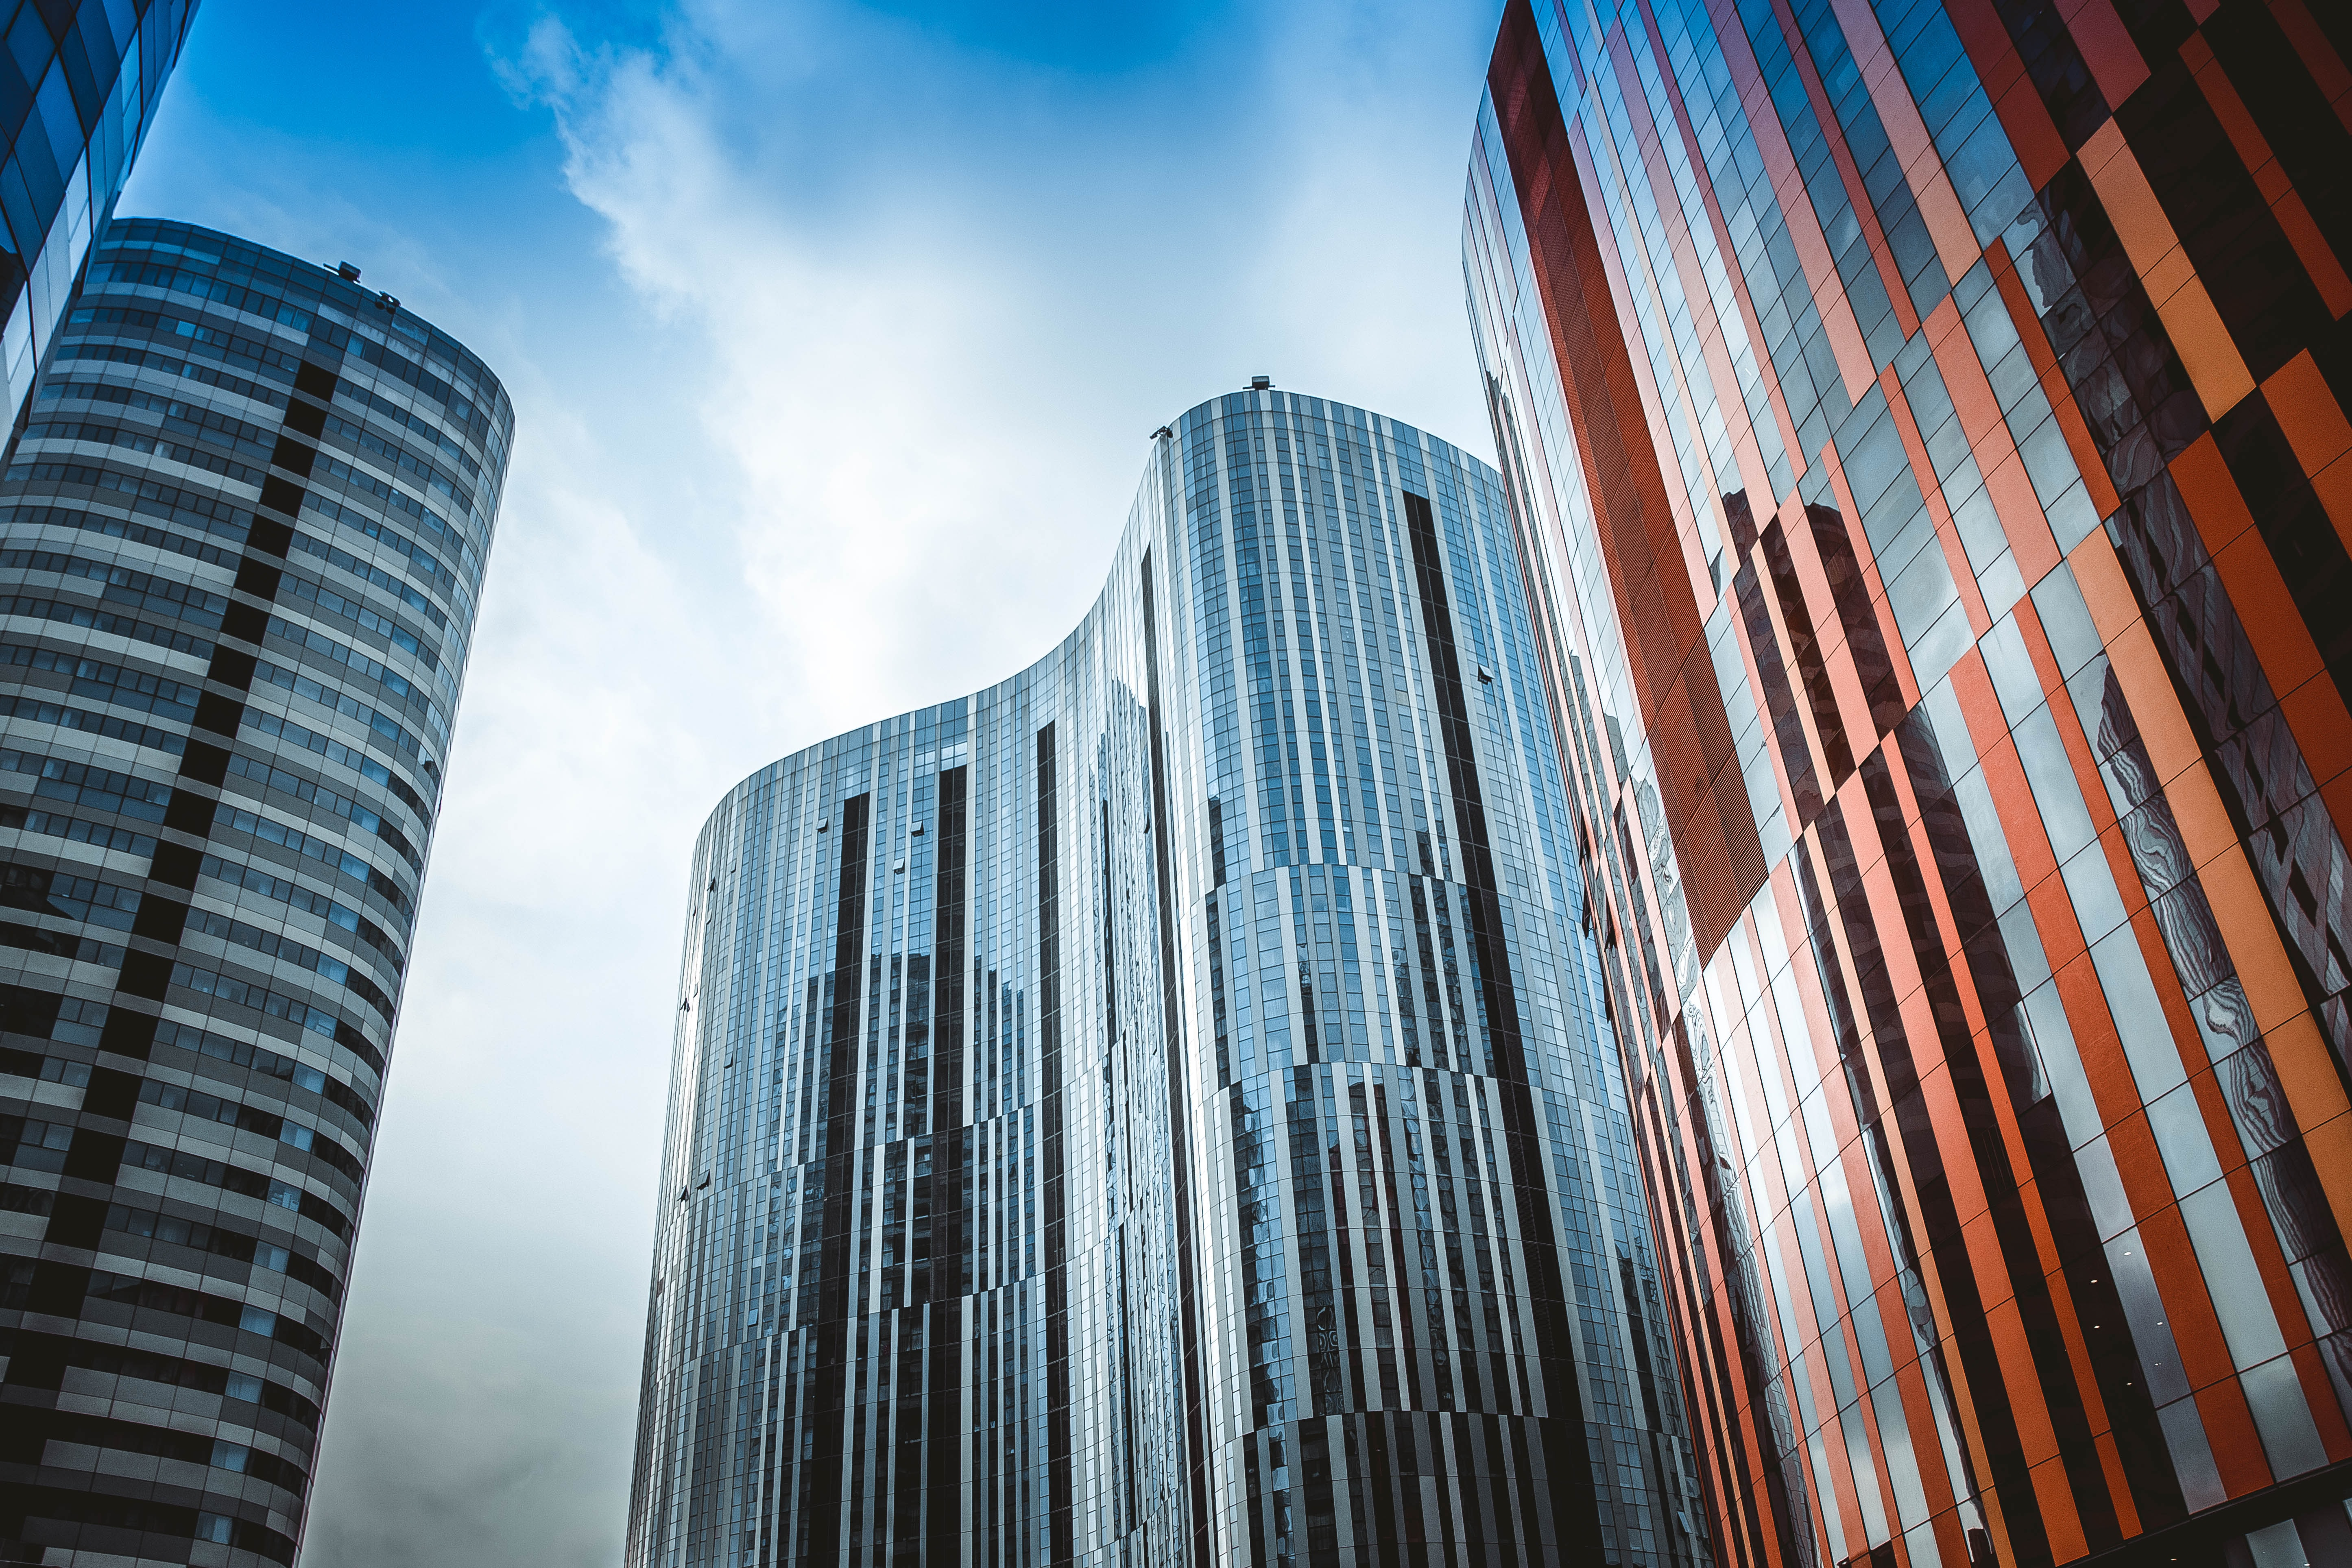 Several buildings with curved architecture, and reflective surfaces in soft light.